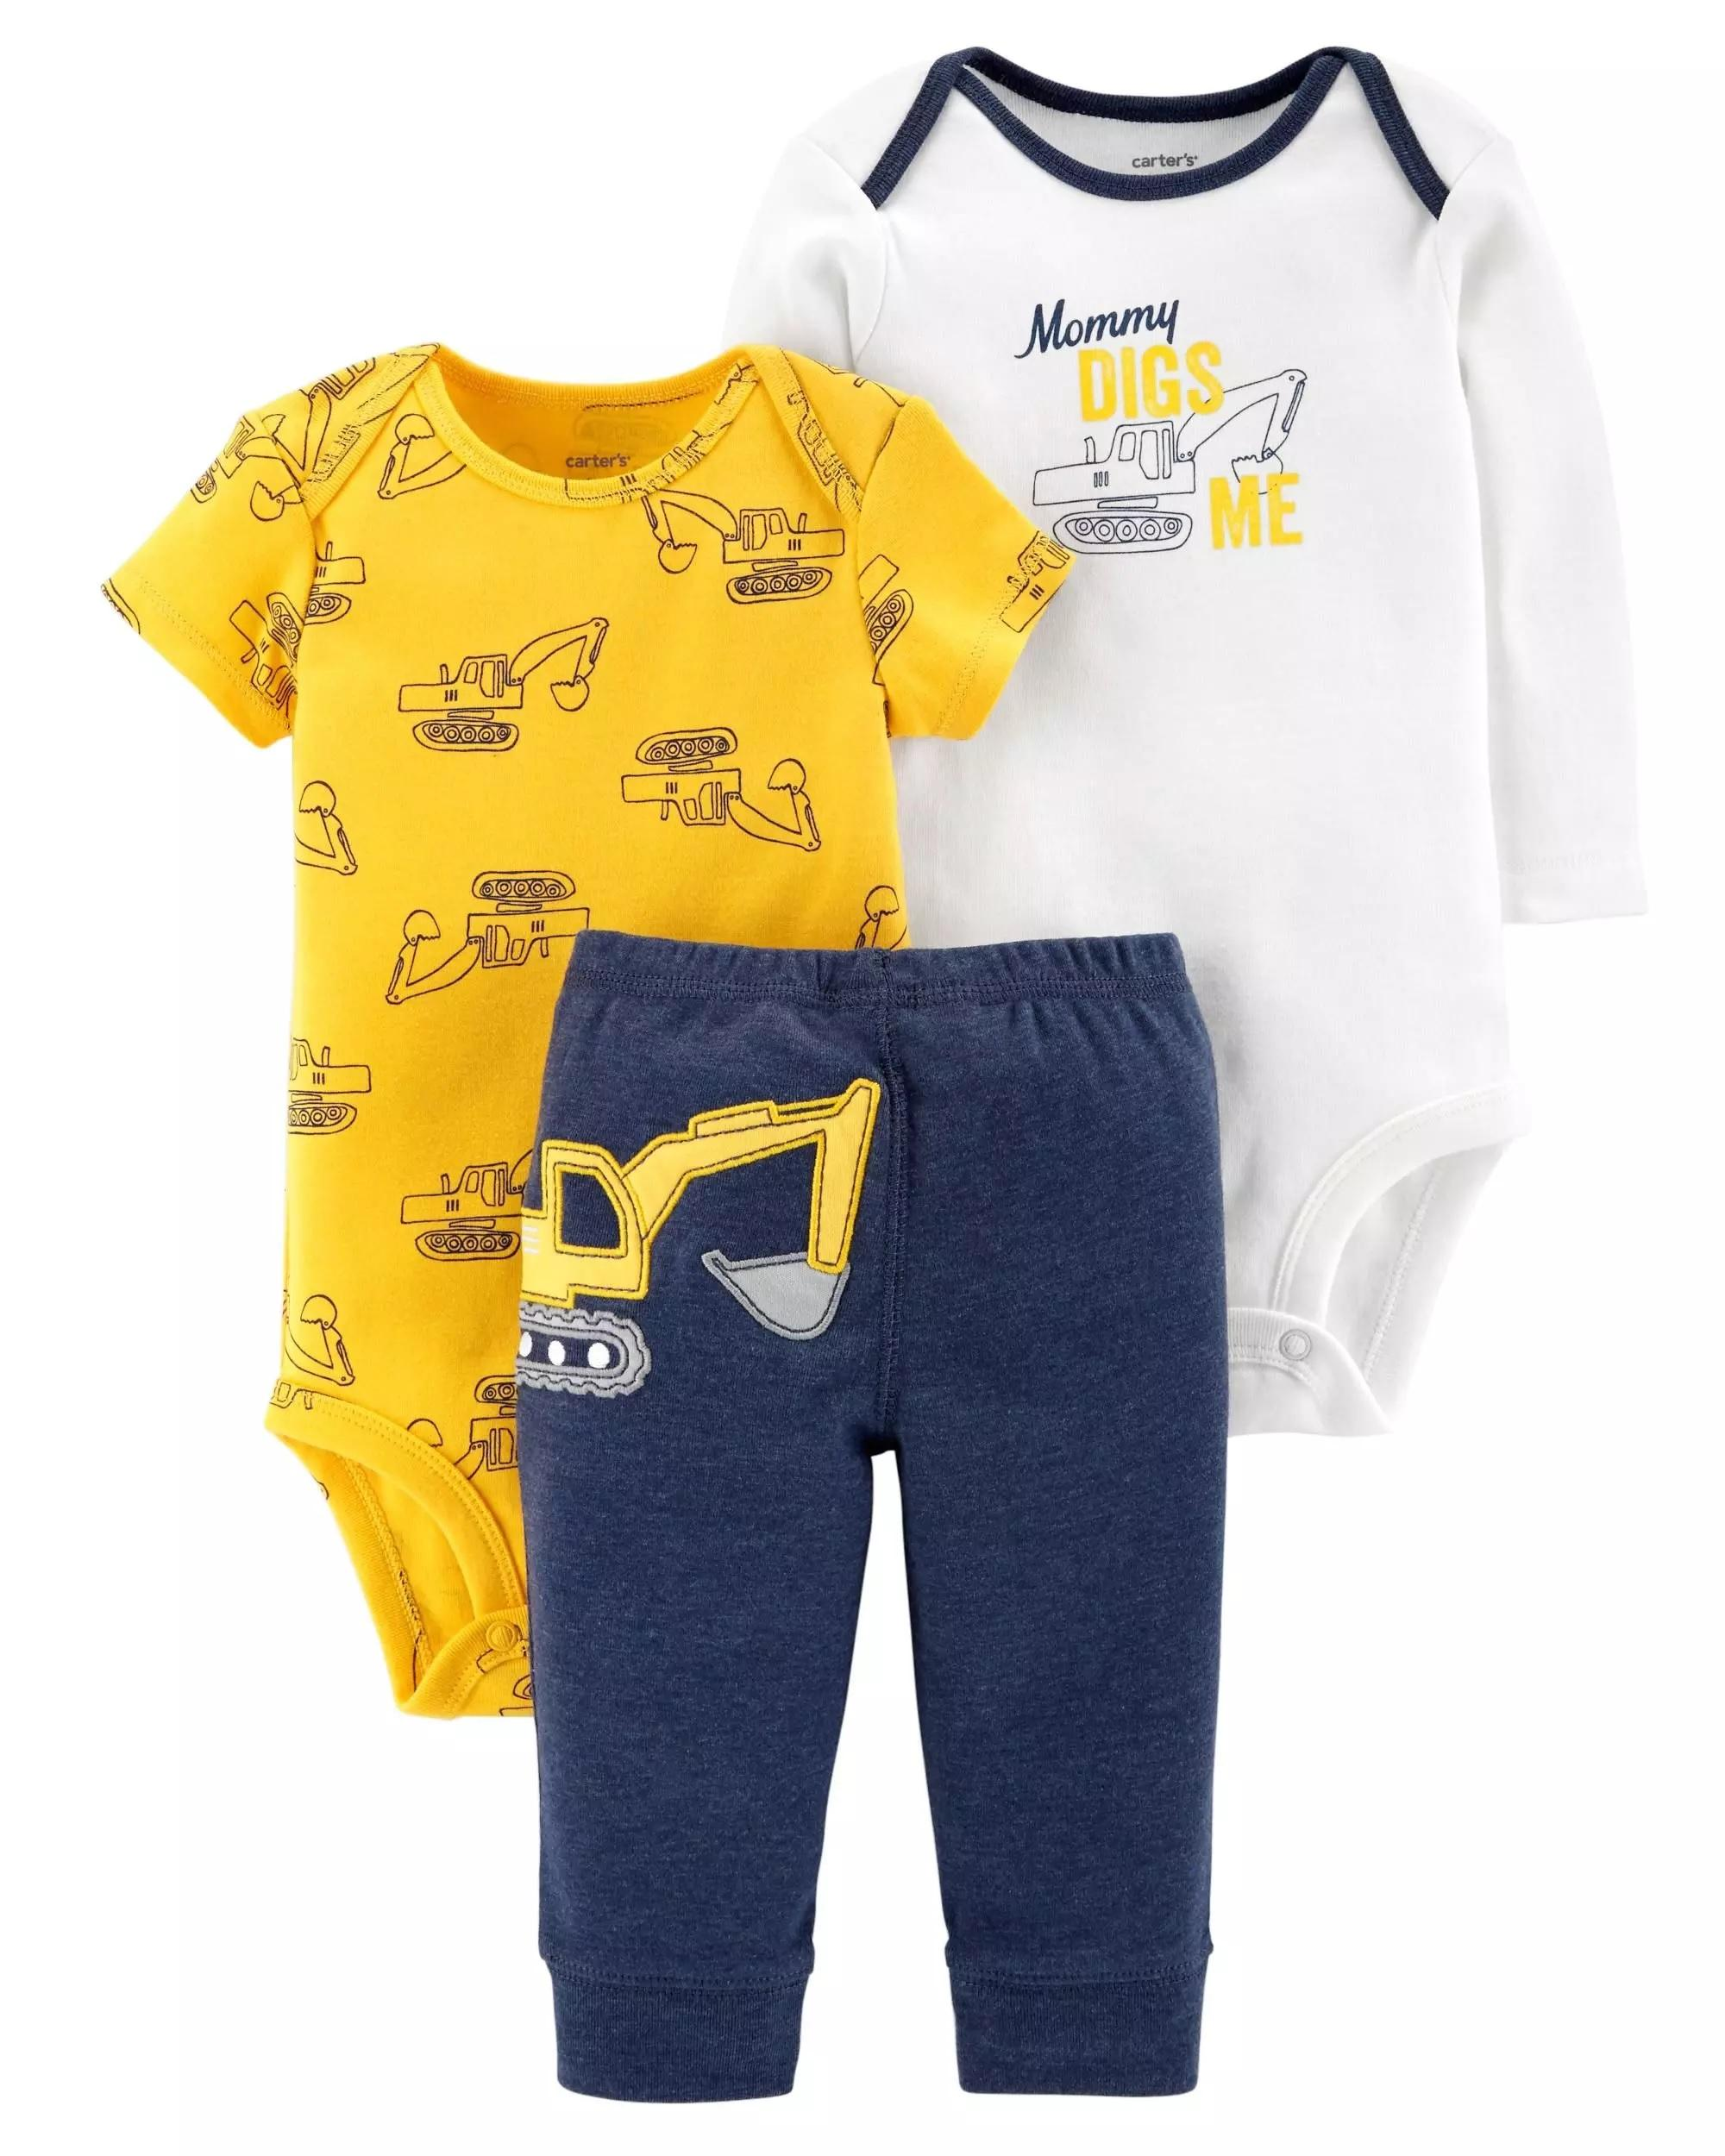 81640b5caf5a4 Carter's 3-Piece Little Character Set Yellow Navy Heather Carters